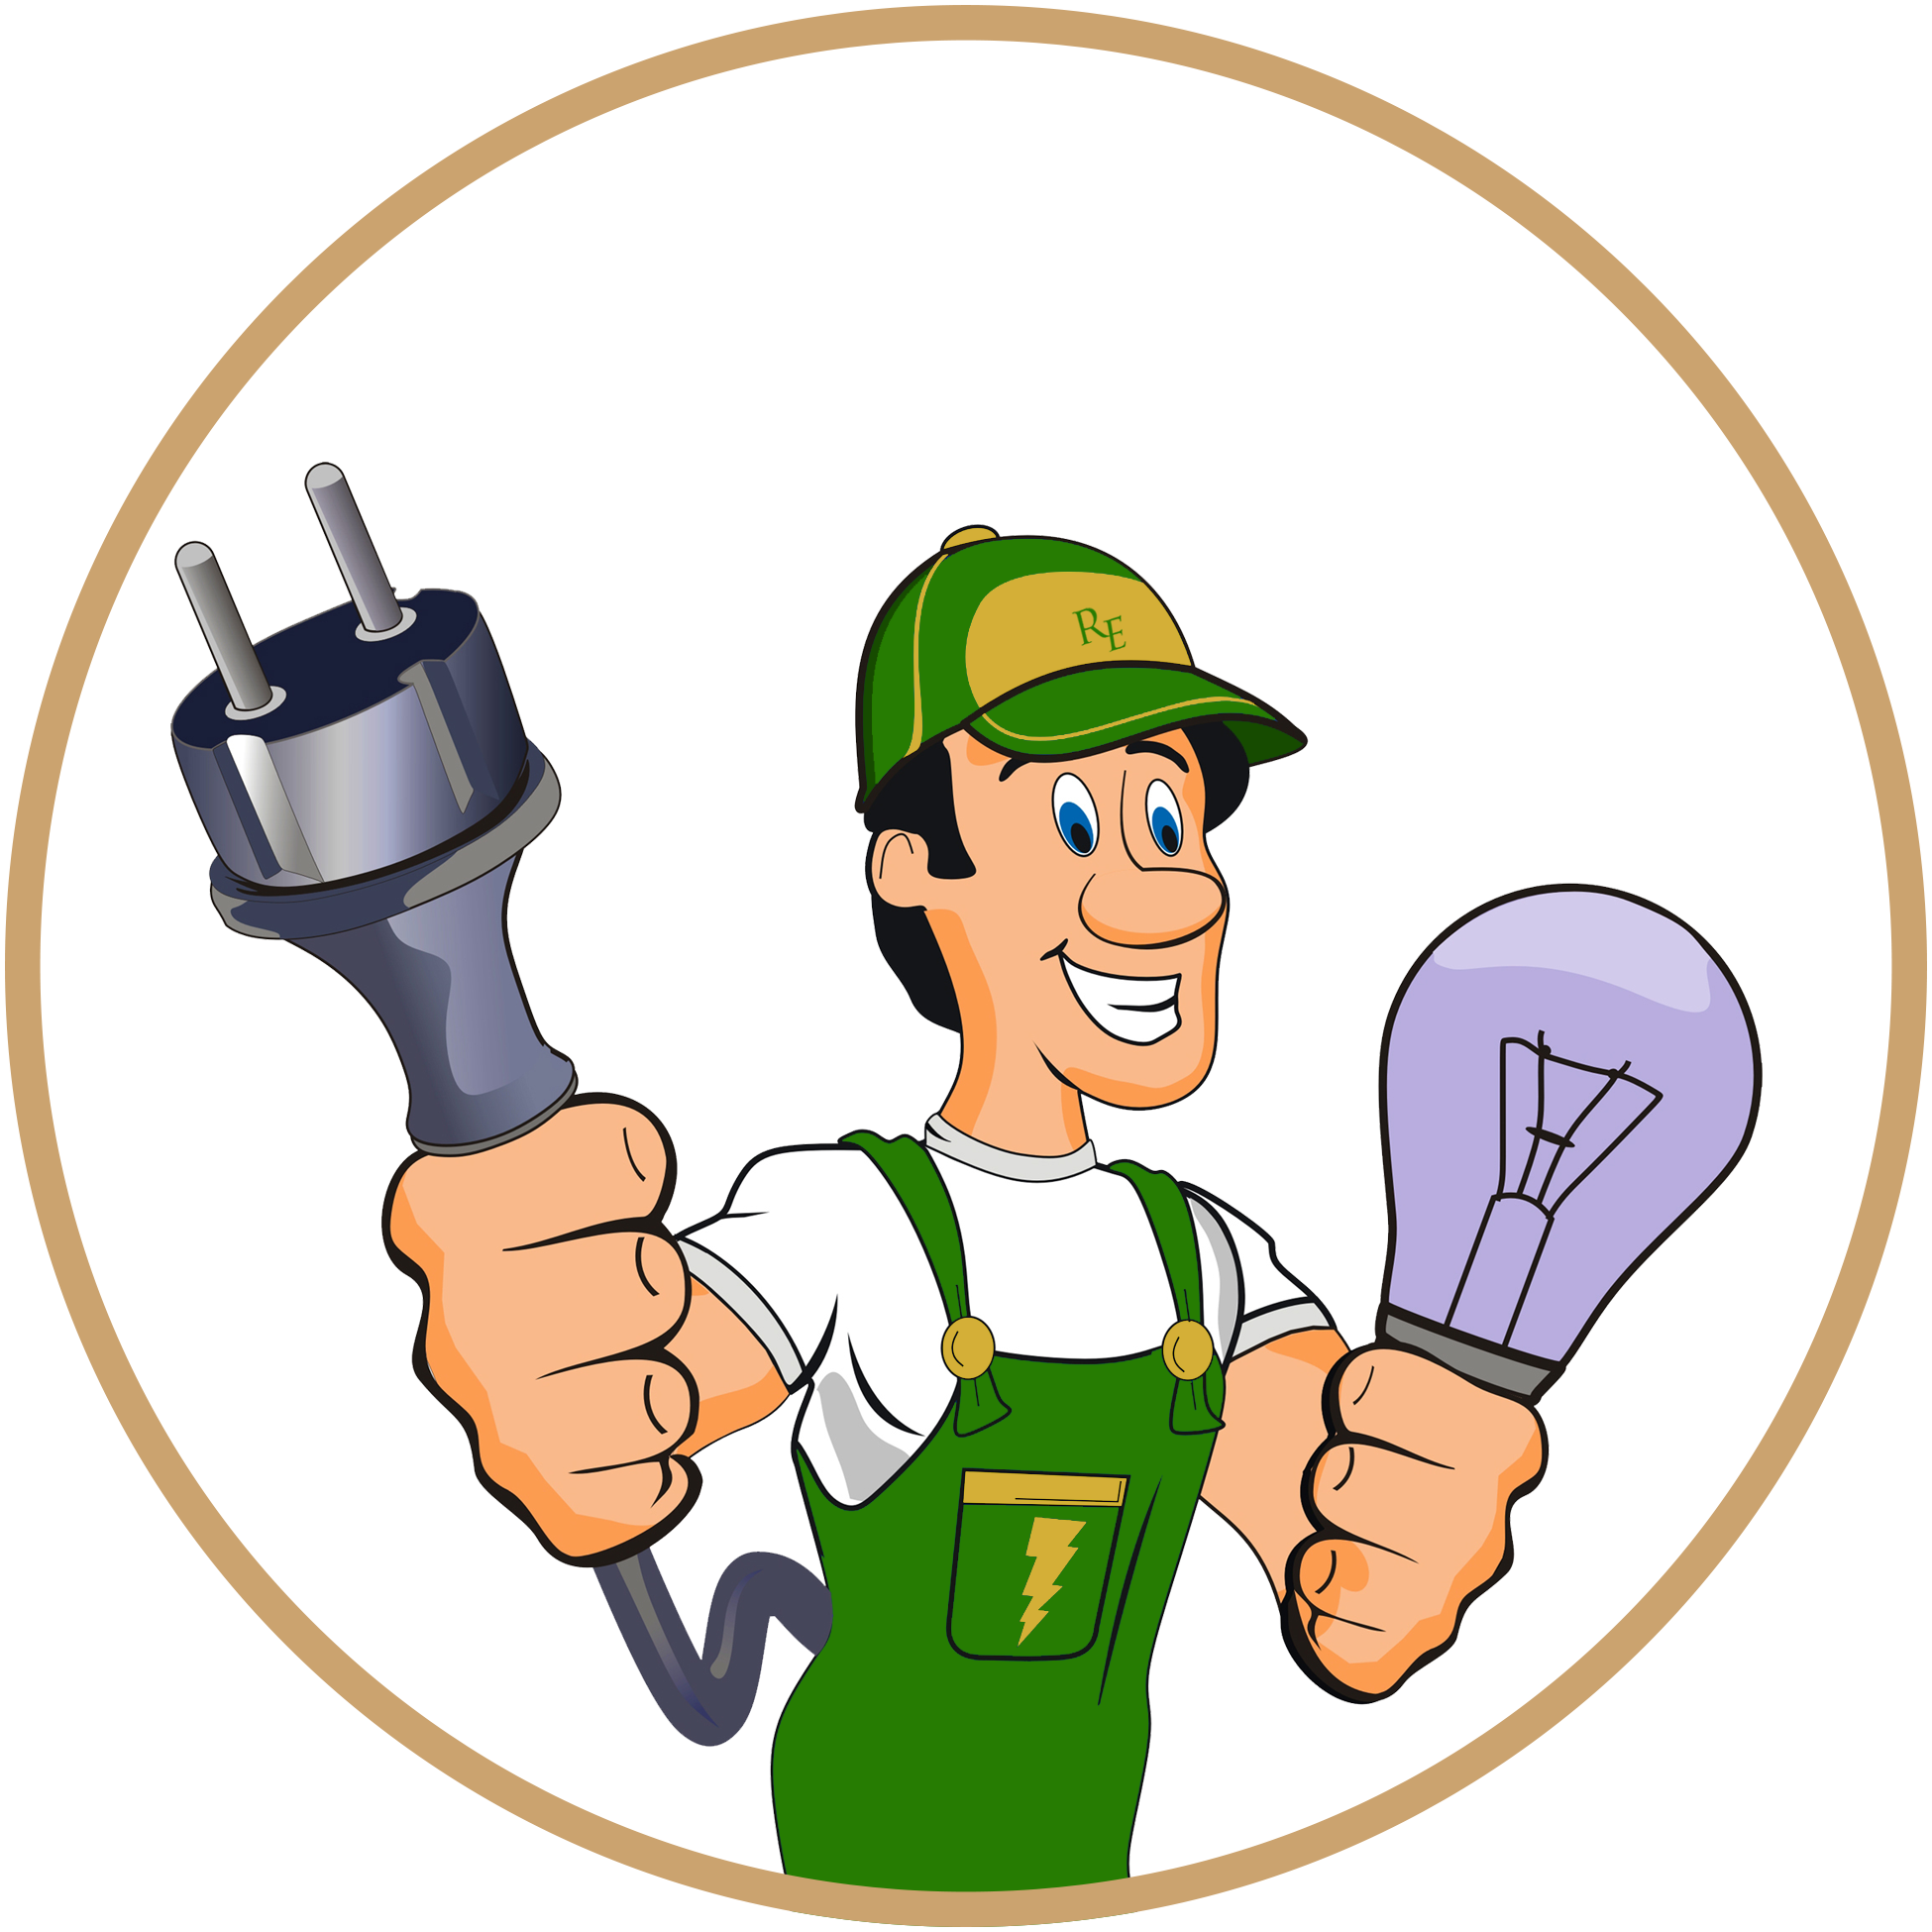 Electrician clipart female. Neat design electricity electrical